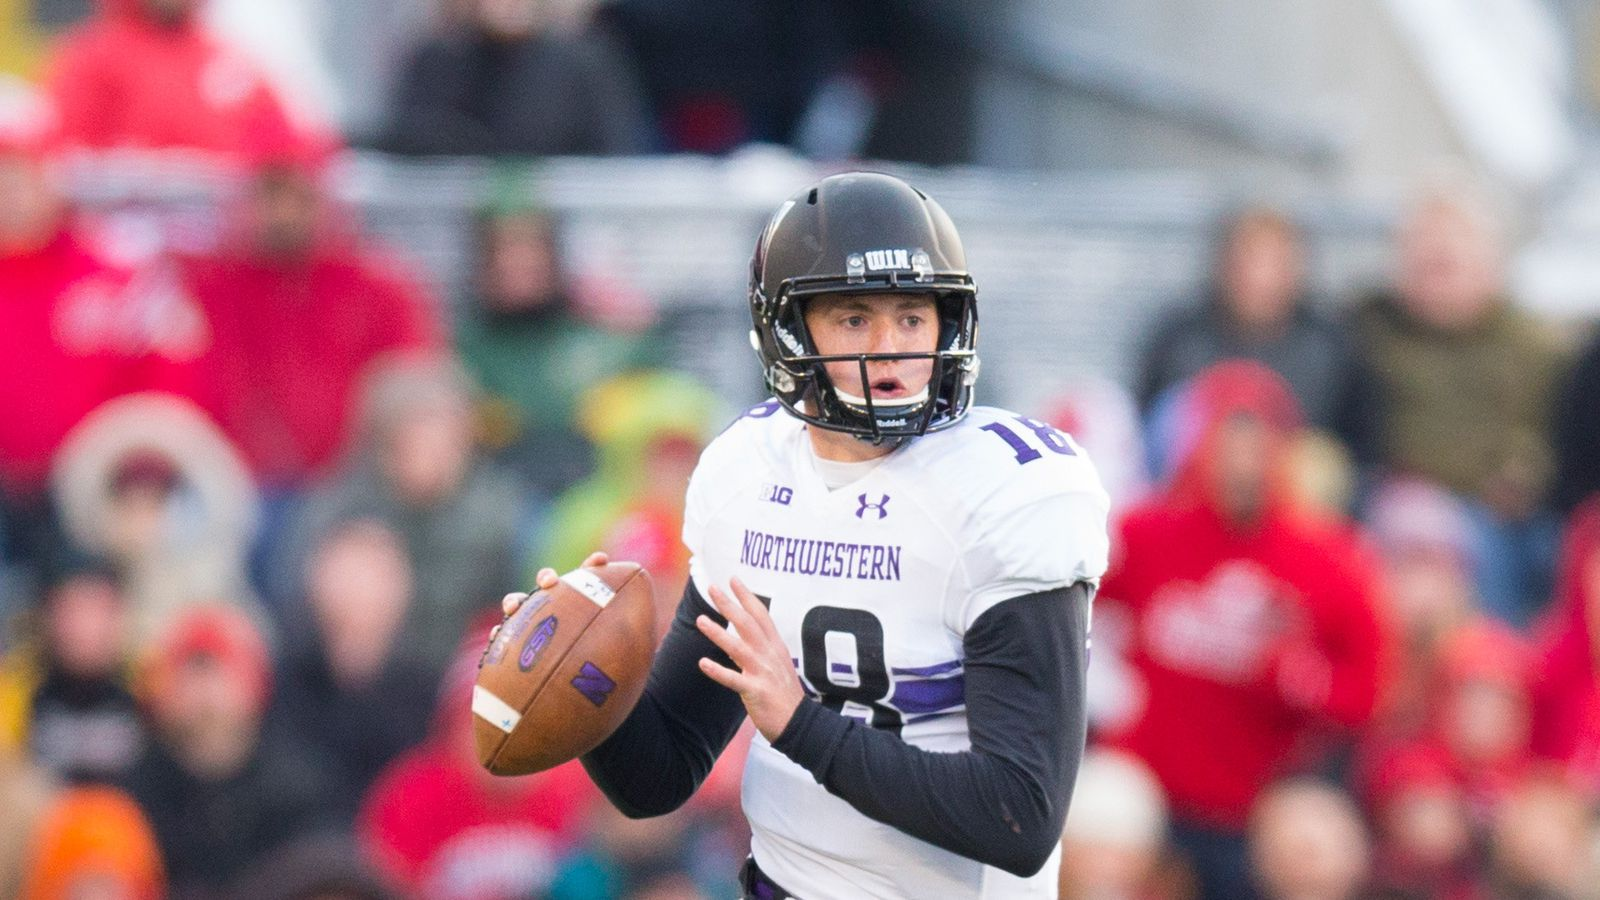 Get the latest Northwestern Wildcats news, scores, stats, standings, rumors, and more from ESPN.